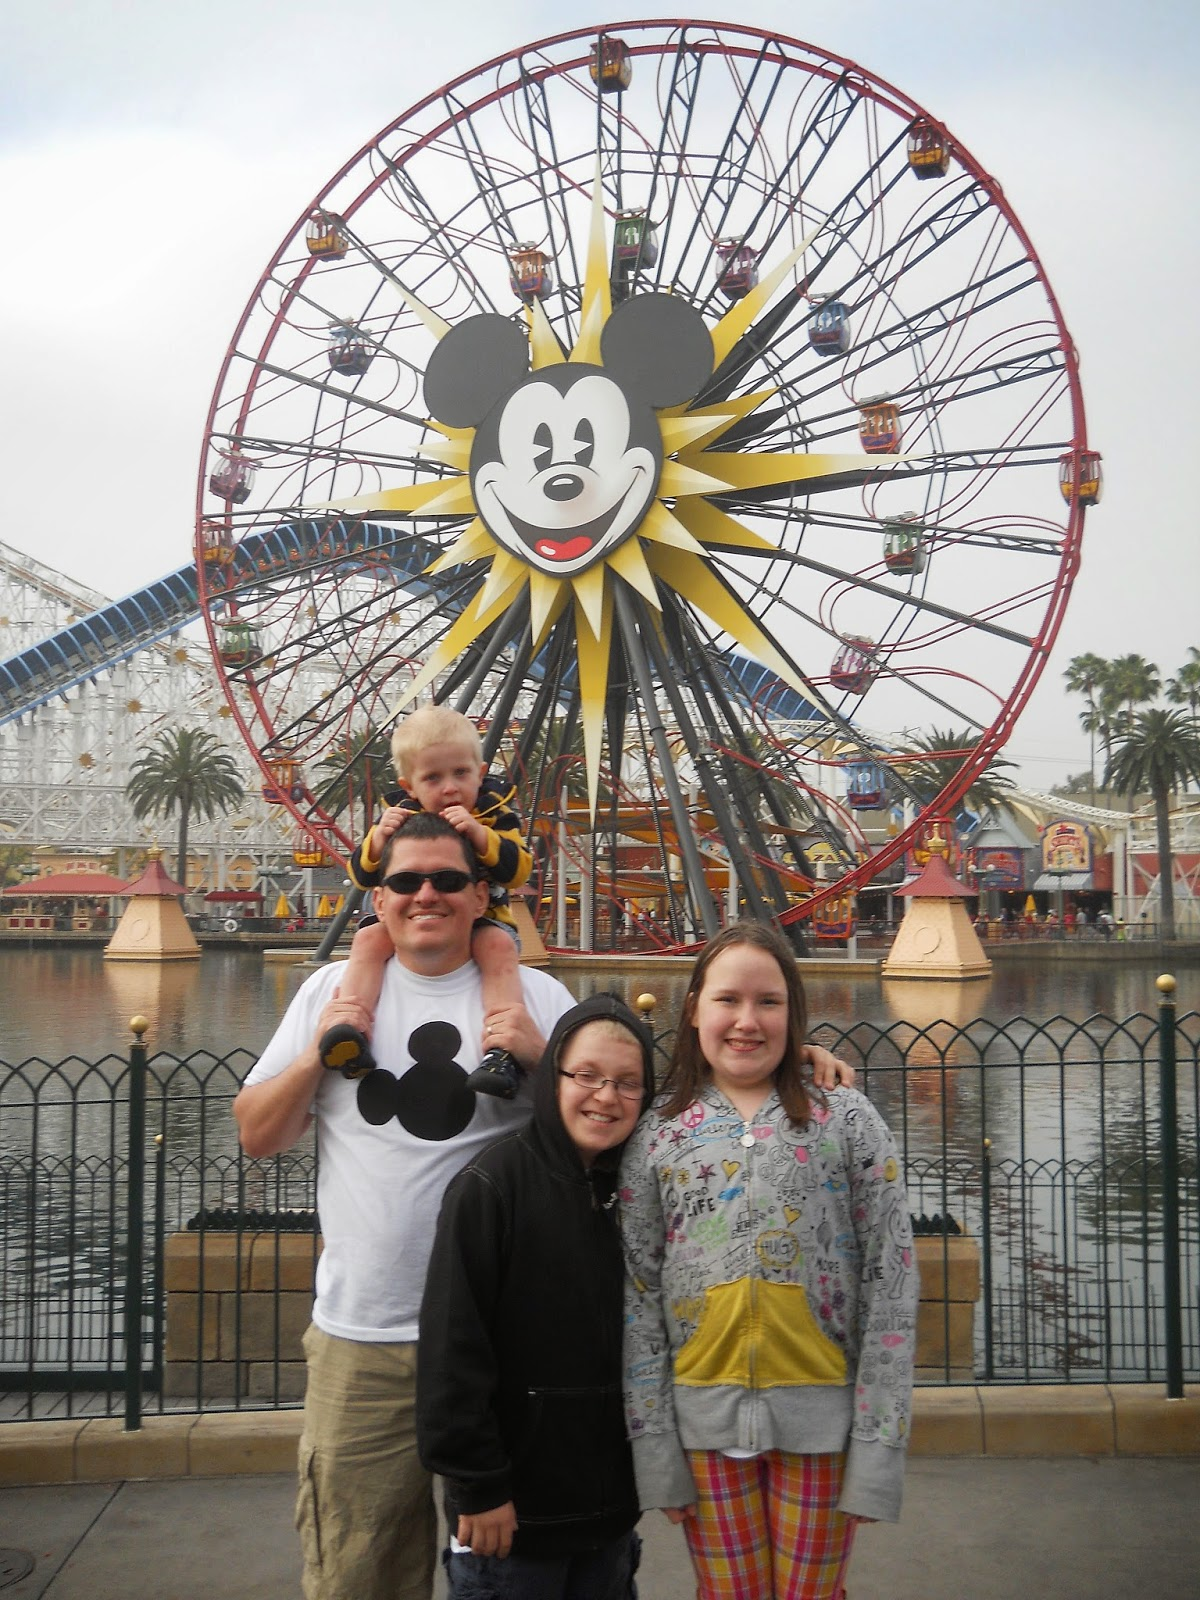 The photos you want to make sure to get while at Disneyland from LoveOurDisney.com